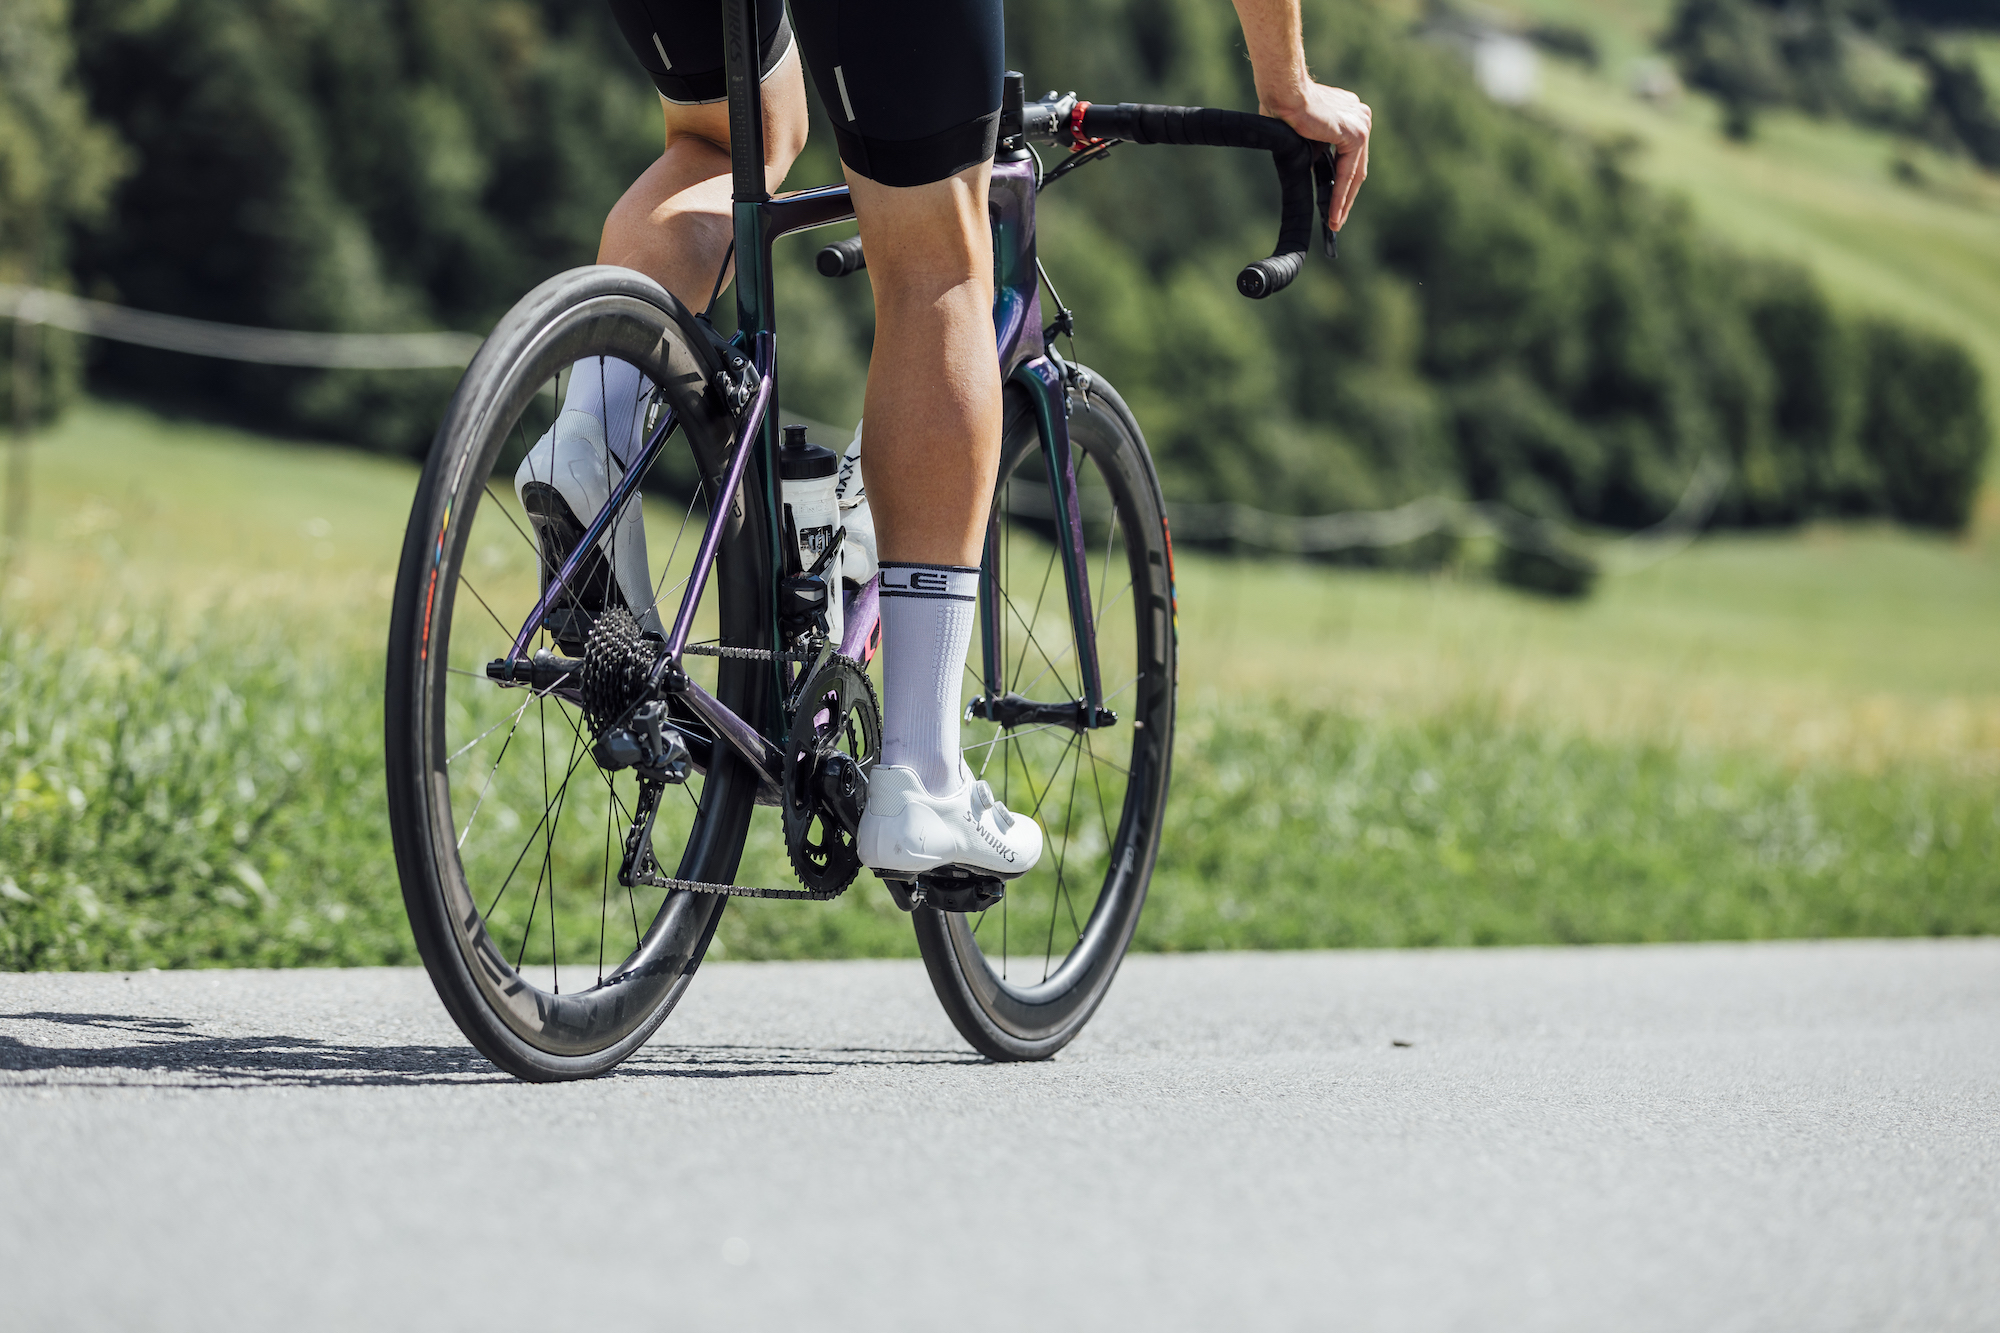 Best cycling shoe deals: Get up to £100 off a set of high end shoes